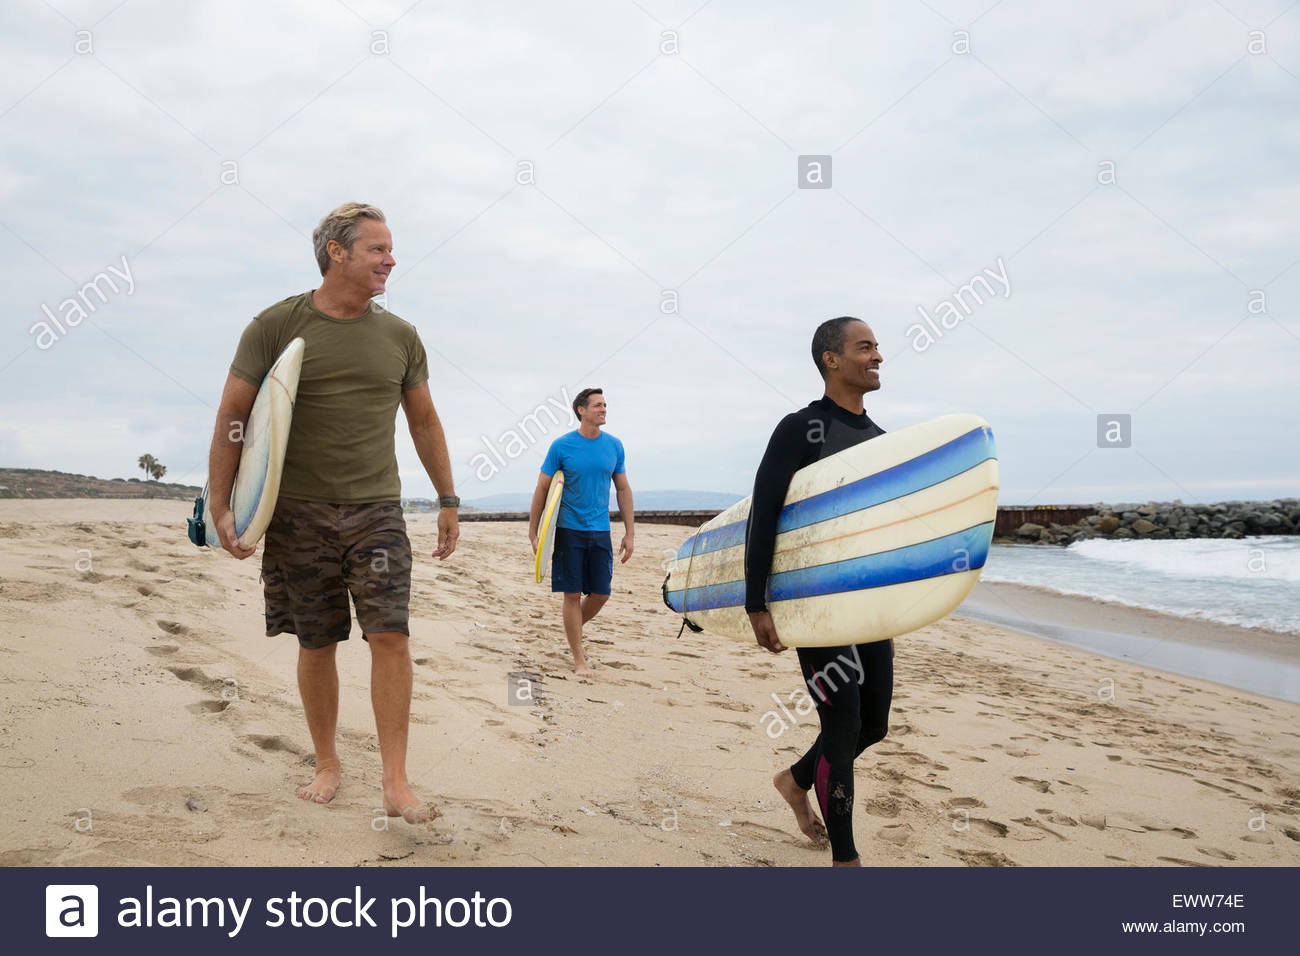 Men with surfboards walking on beach - Stock Image